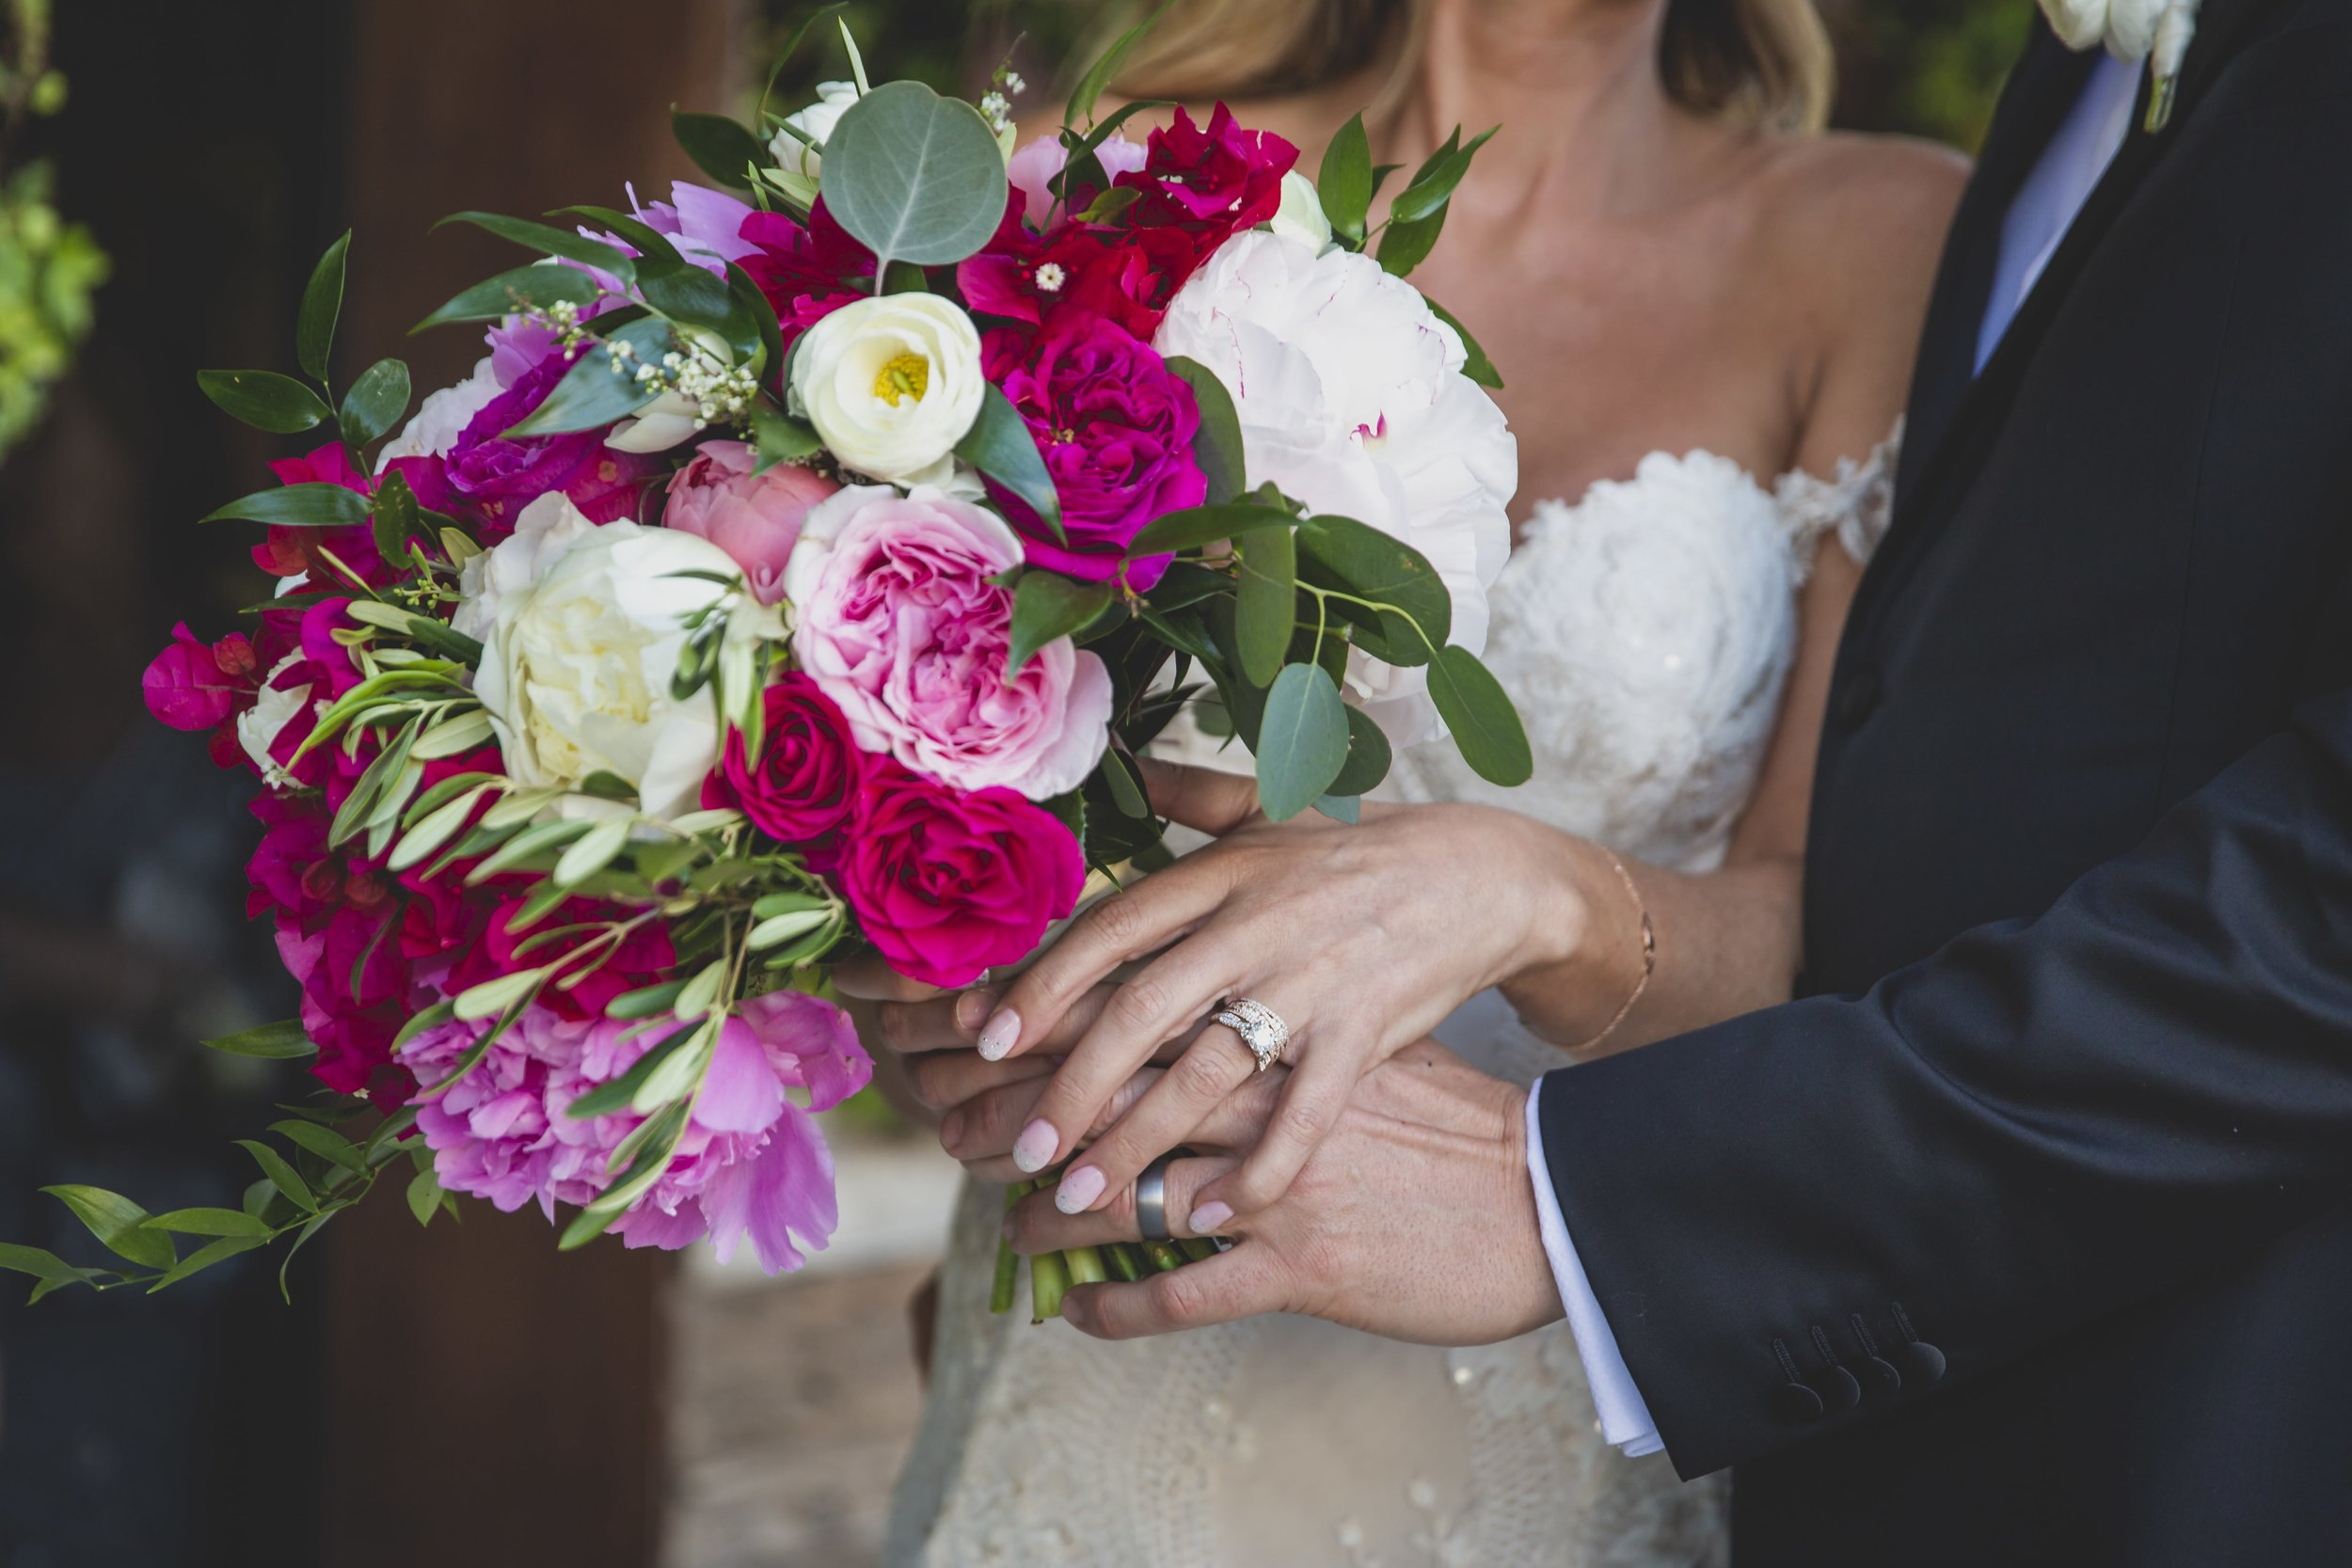 Wedding Photography Packages - Heritage Park, Dana Point, CA - The brides bouquet